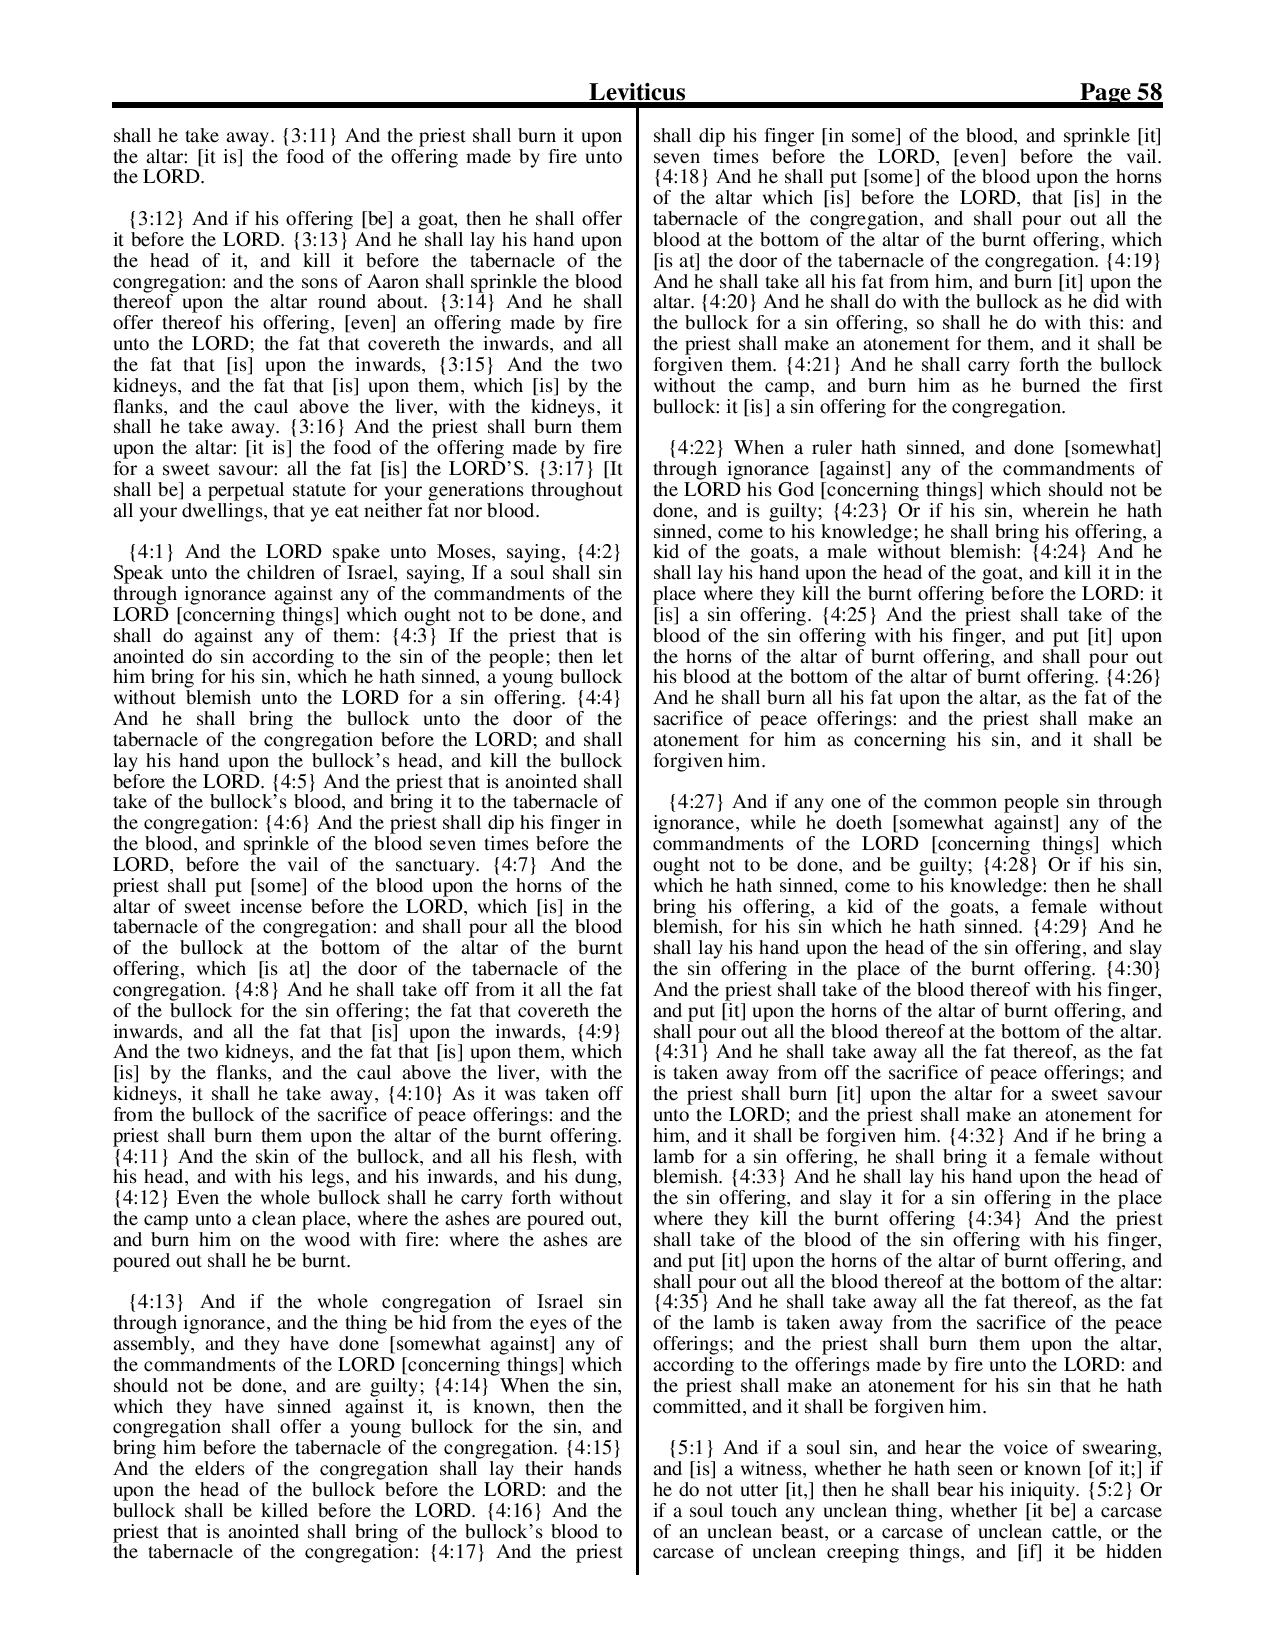 King-James-Bible-KJV-Bible-PDF-page-079